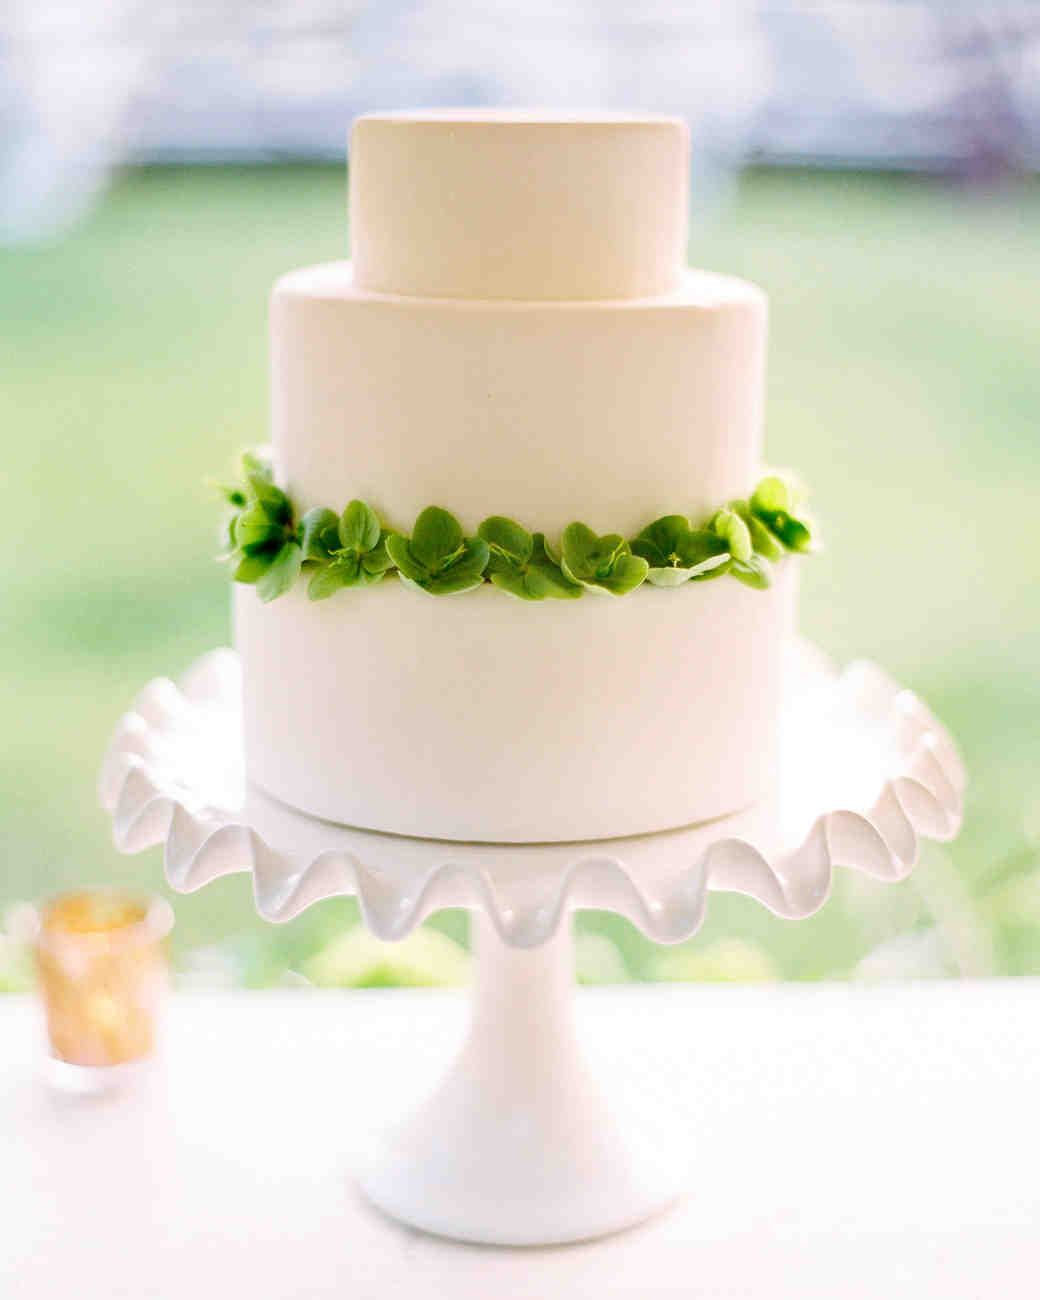 Wedding Cake with Helleborus Blossoms